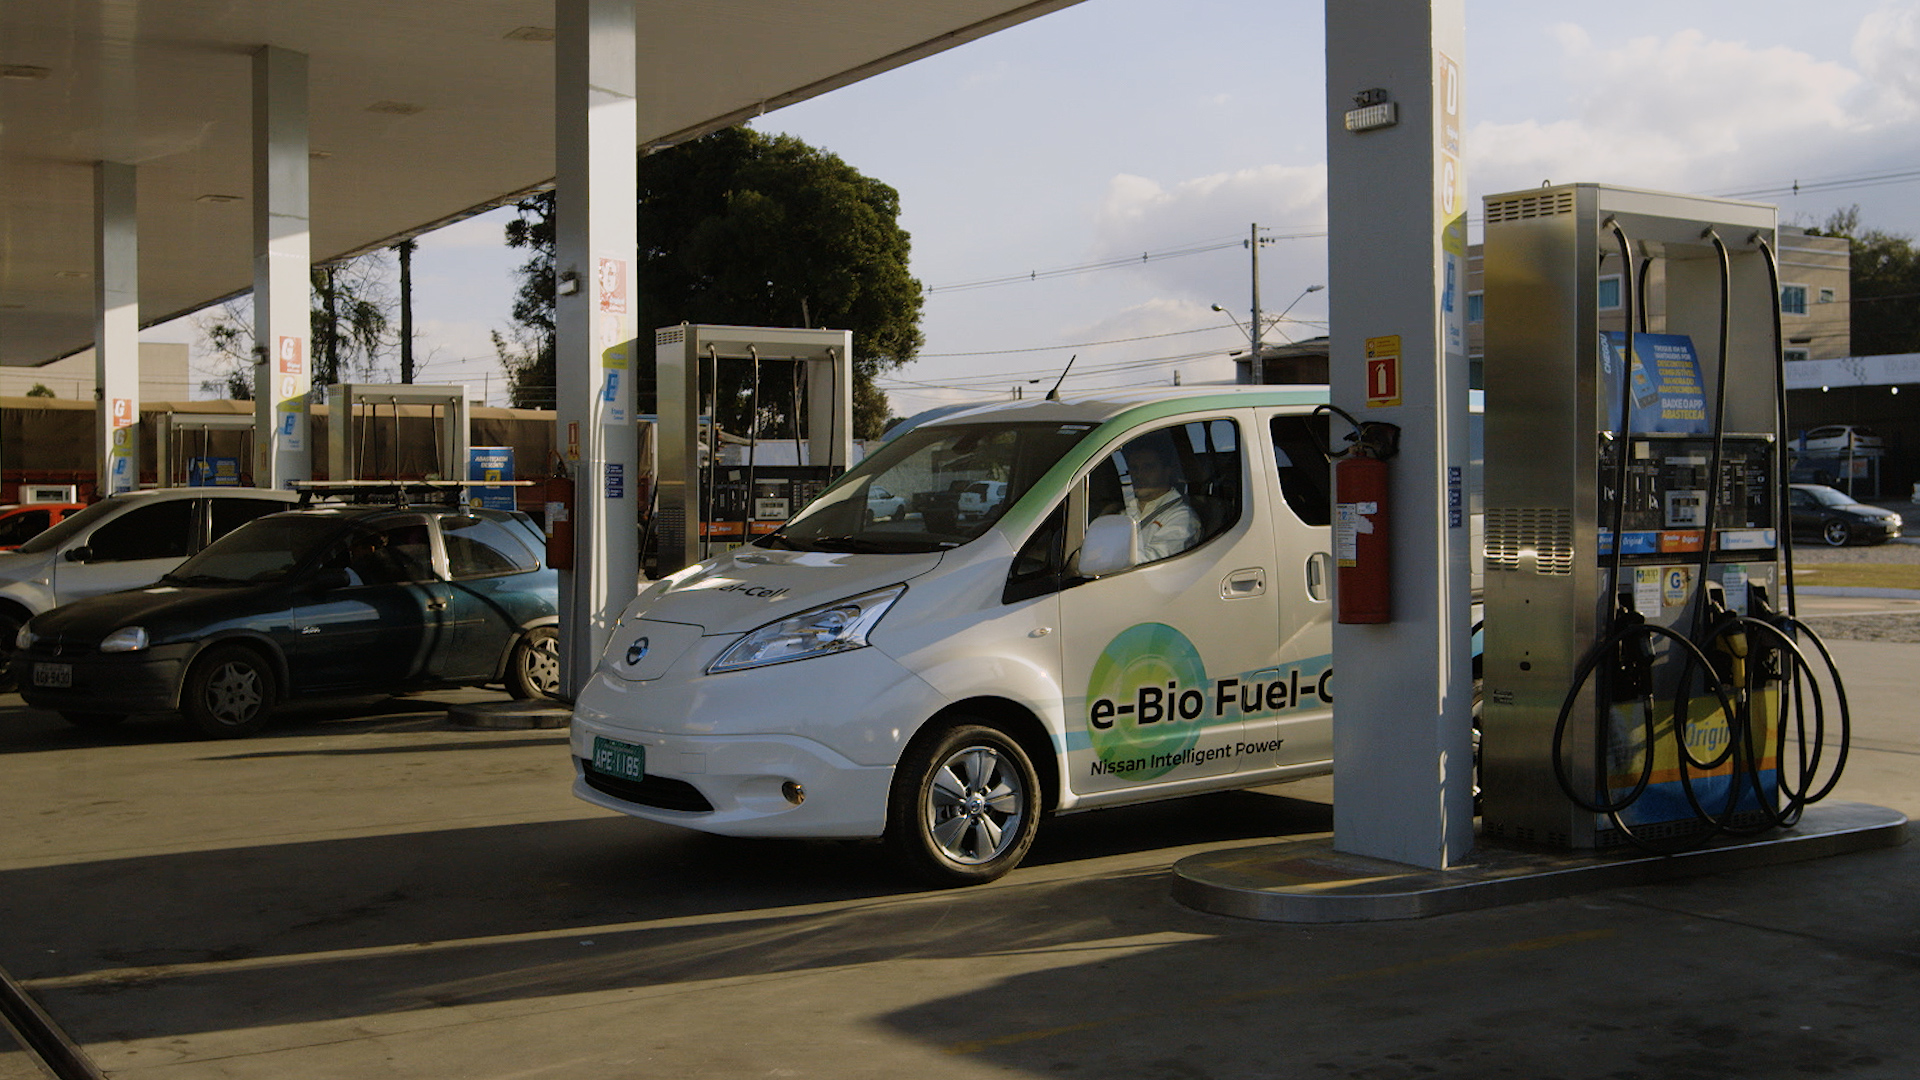 nissan e bio fuel cell prototype vehicle 05 source